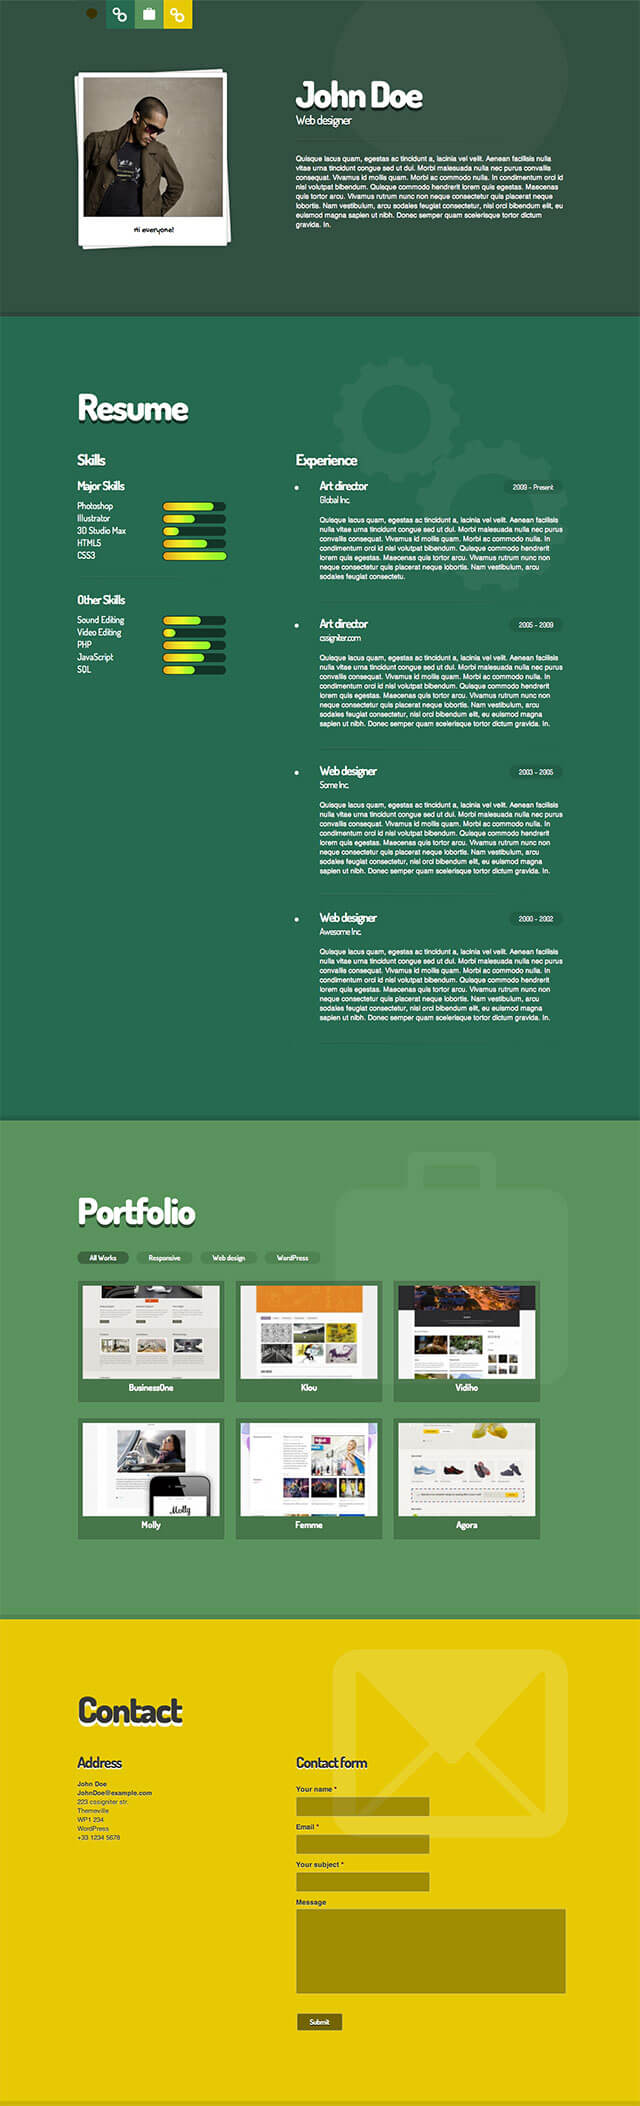 Beautiful Resume Wordpress Theme Nulled Gallery - Entry Level ...